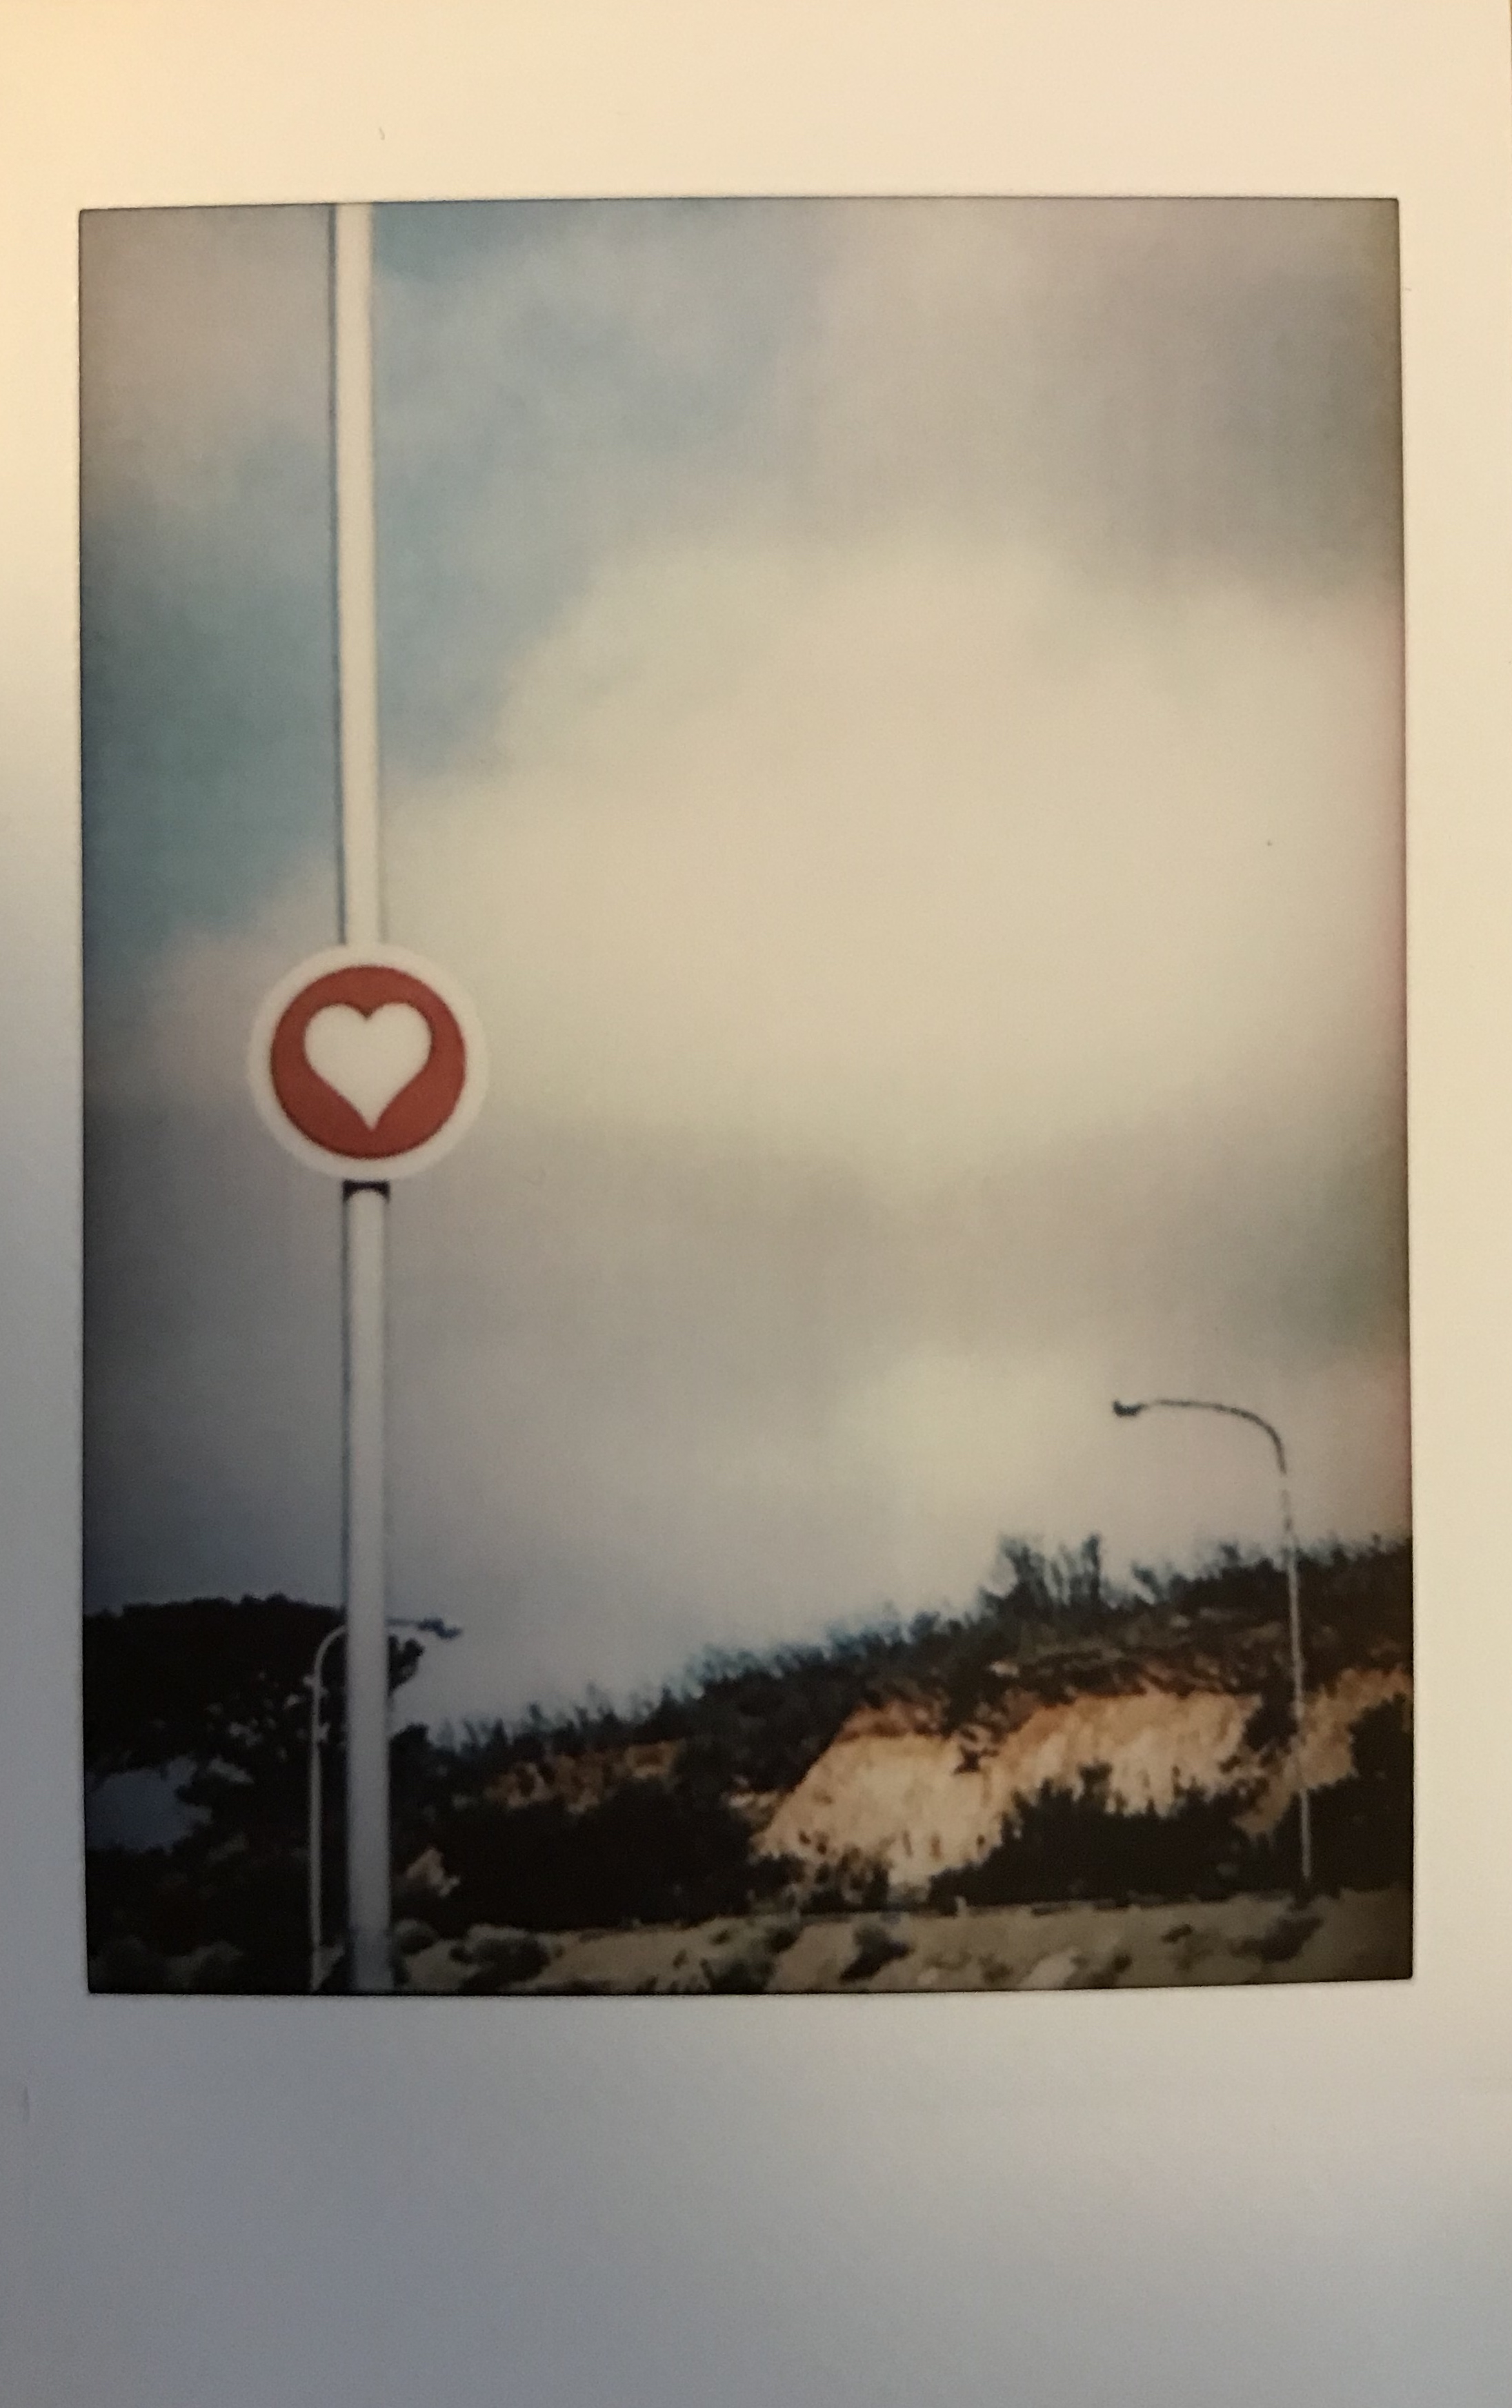 Day23 - Finding love in strange places